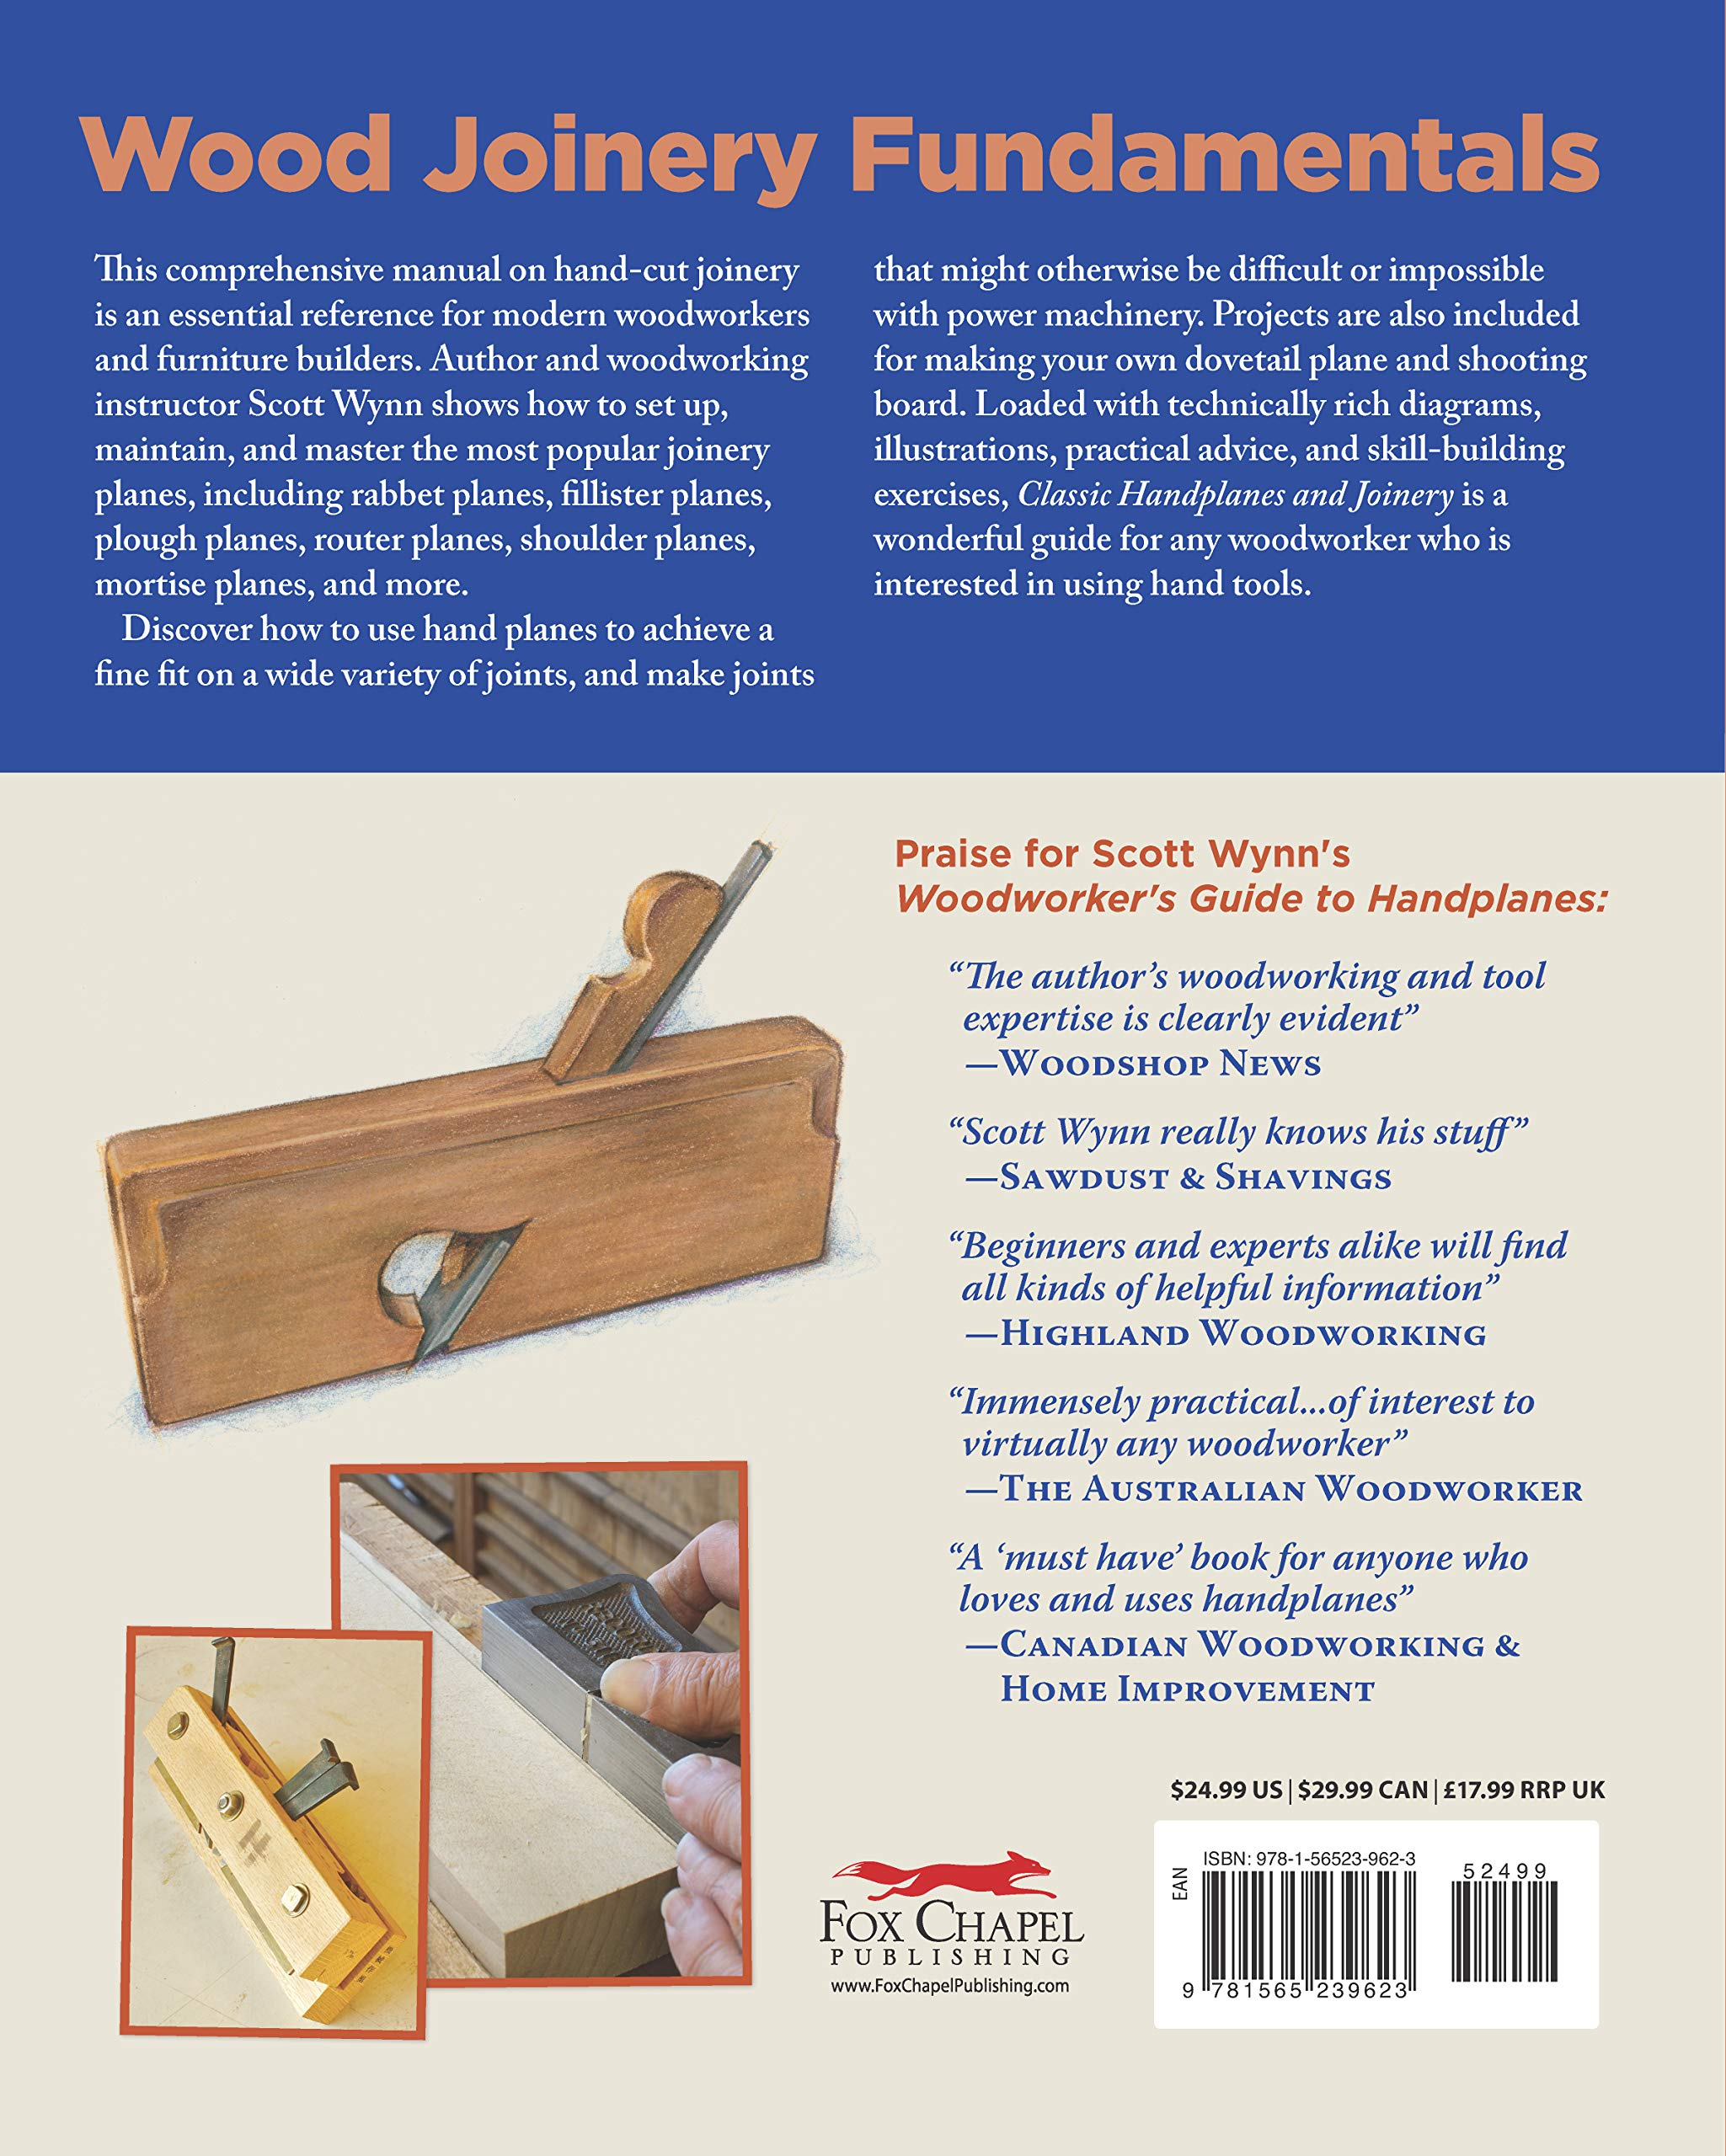 Classic Handplanes And Joinery Essential Tips And Techniques For Woodworkers Fox Chapel Publishing Create Fast Accurate Furniture Joints Like Mortise Tenon Dado Rabbet Using Hand Planes Scott Wynn 9781565239623